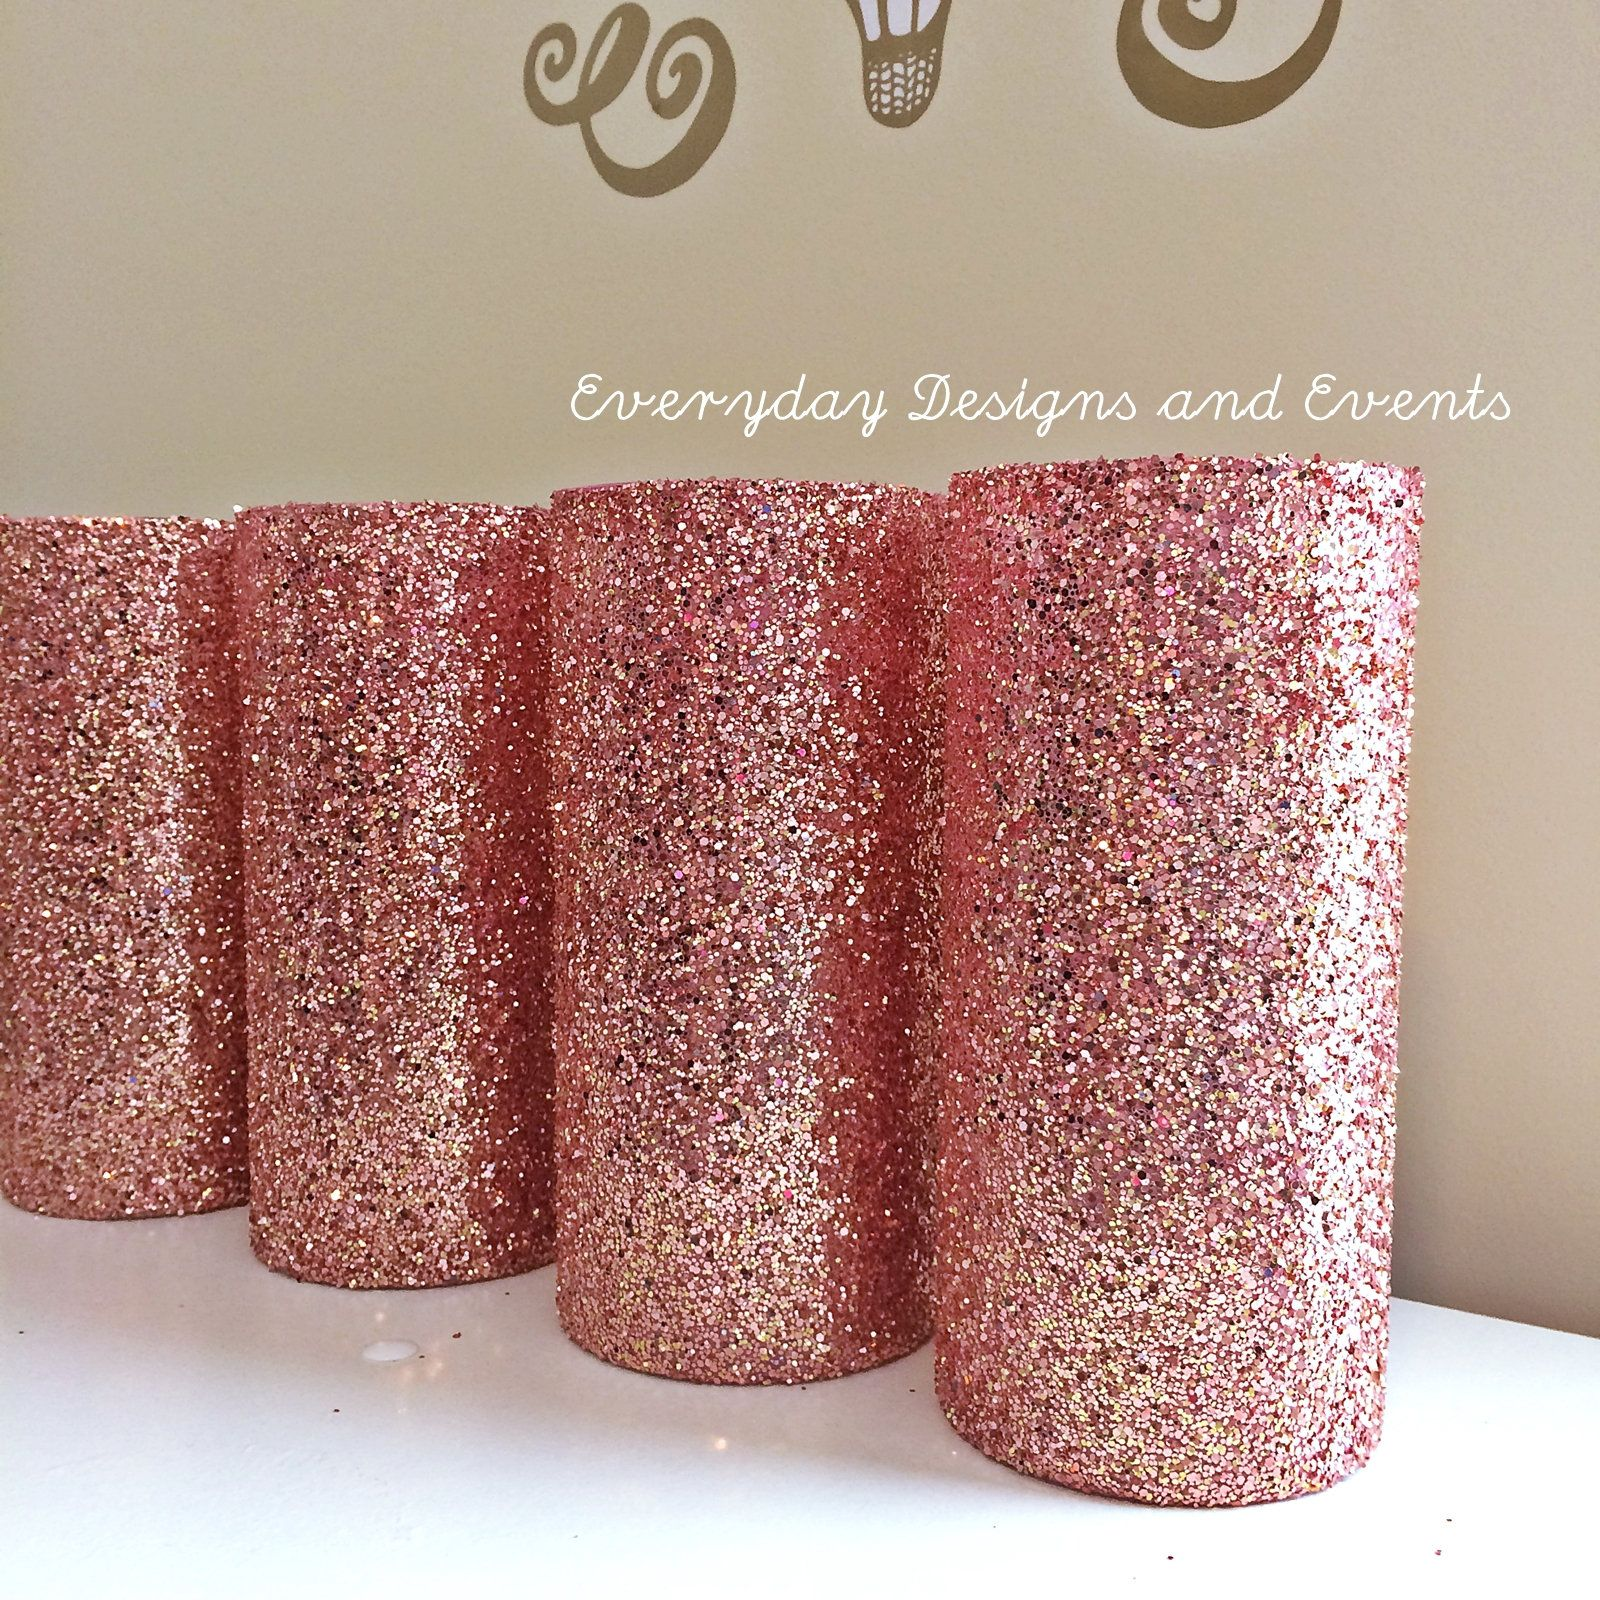 Wedding decorations gold and pink   Rose Gold Glass Vases rose gold decor gold centerpiece wedding